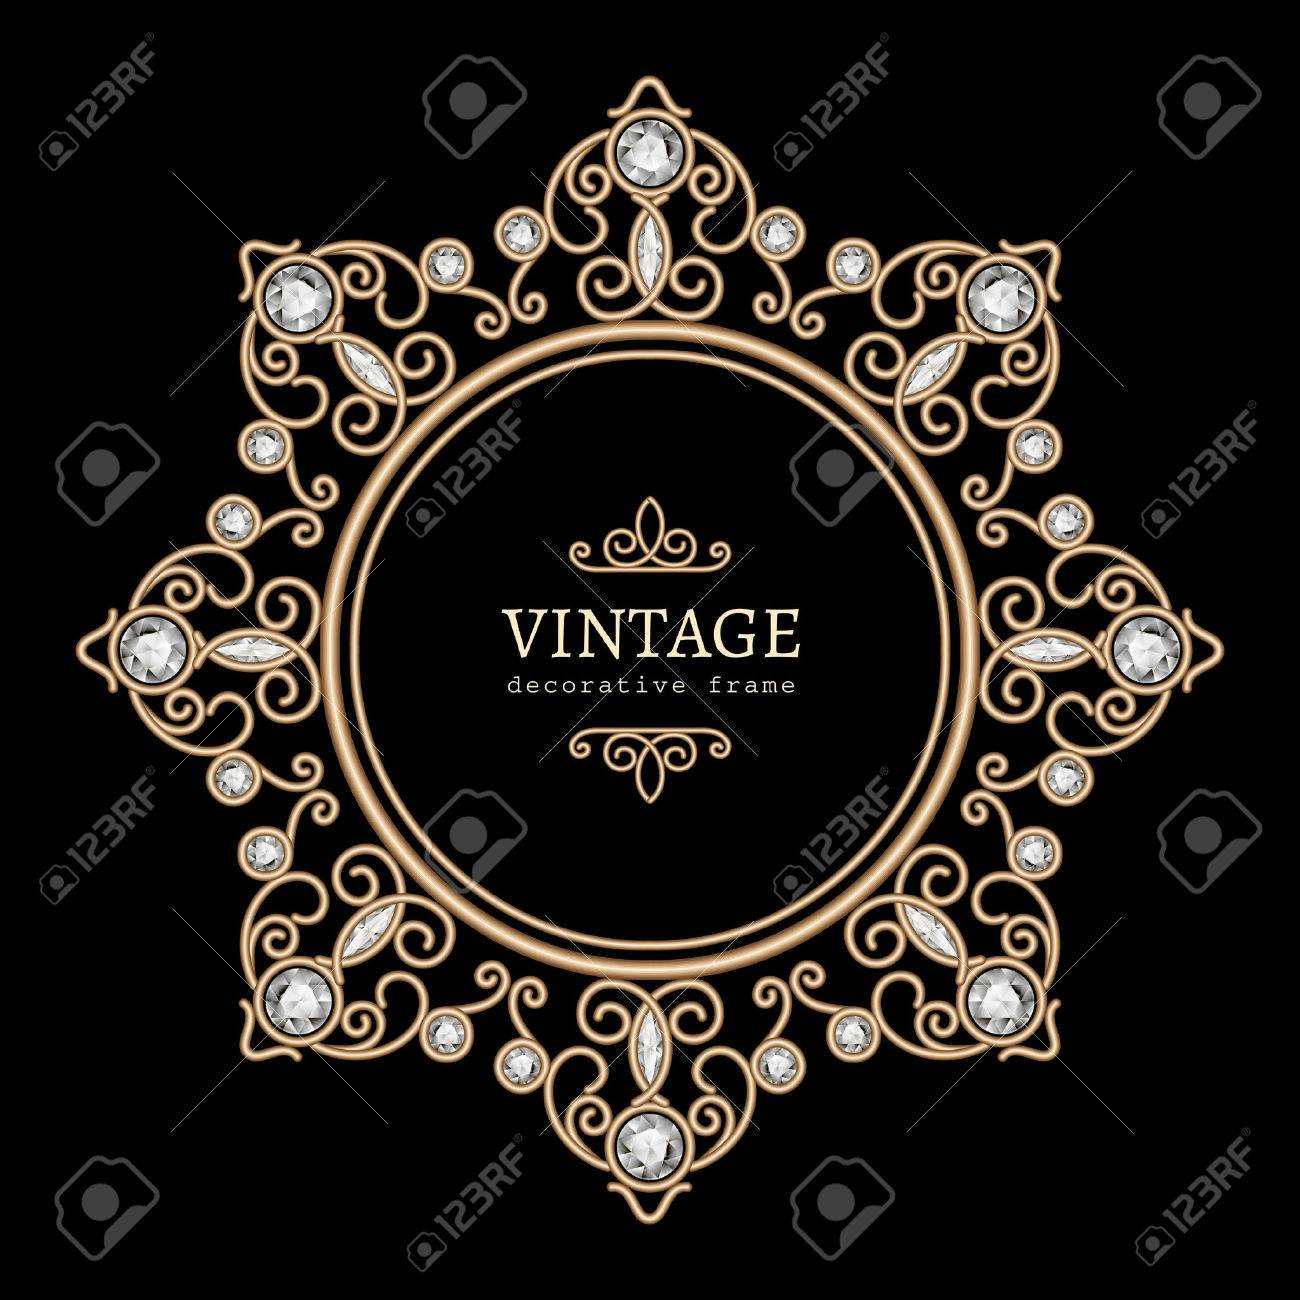 Vintage gold jewelry necklace, round frame, jewellery vignette with diamonds on black - 44650249